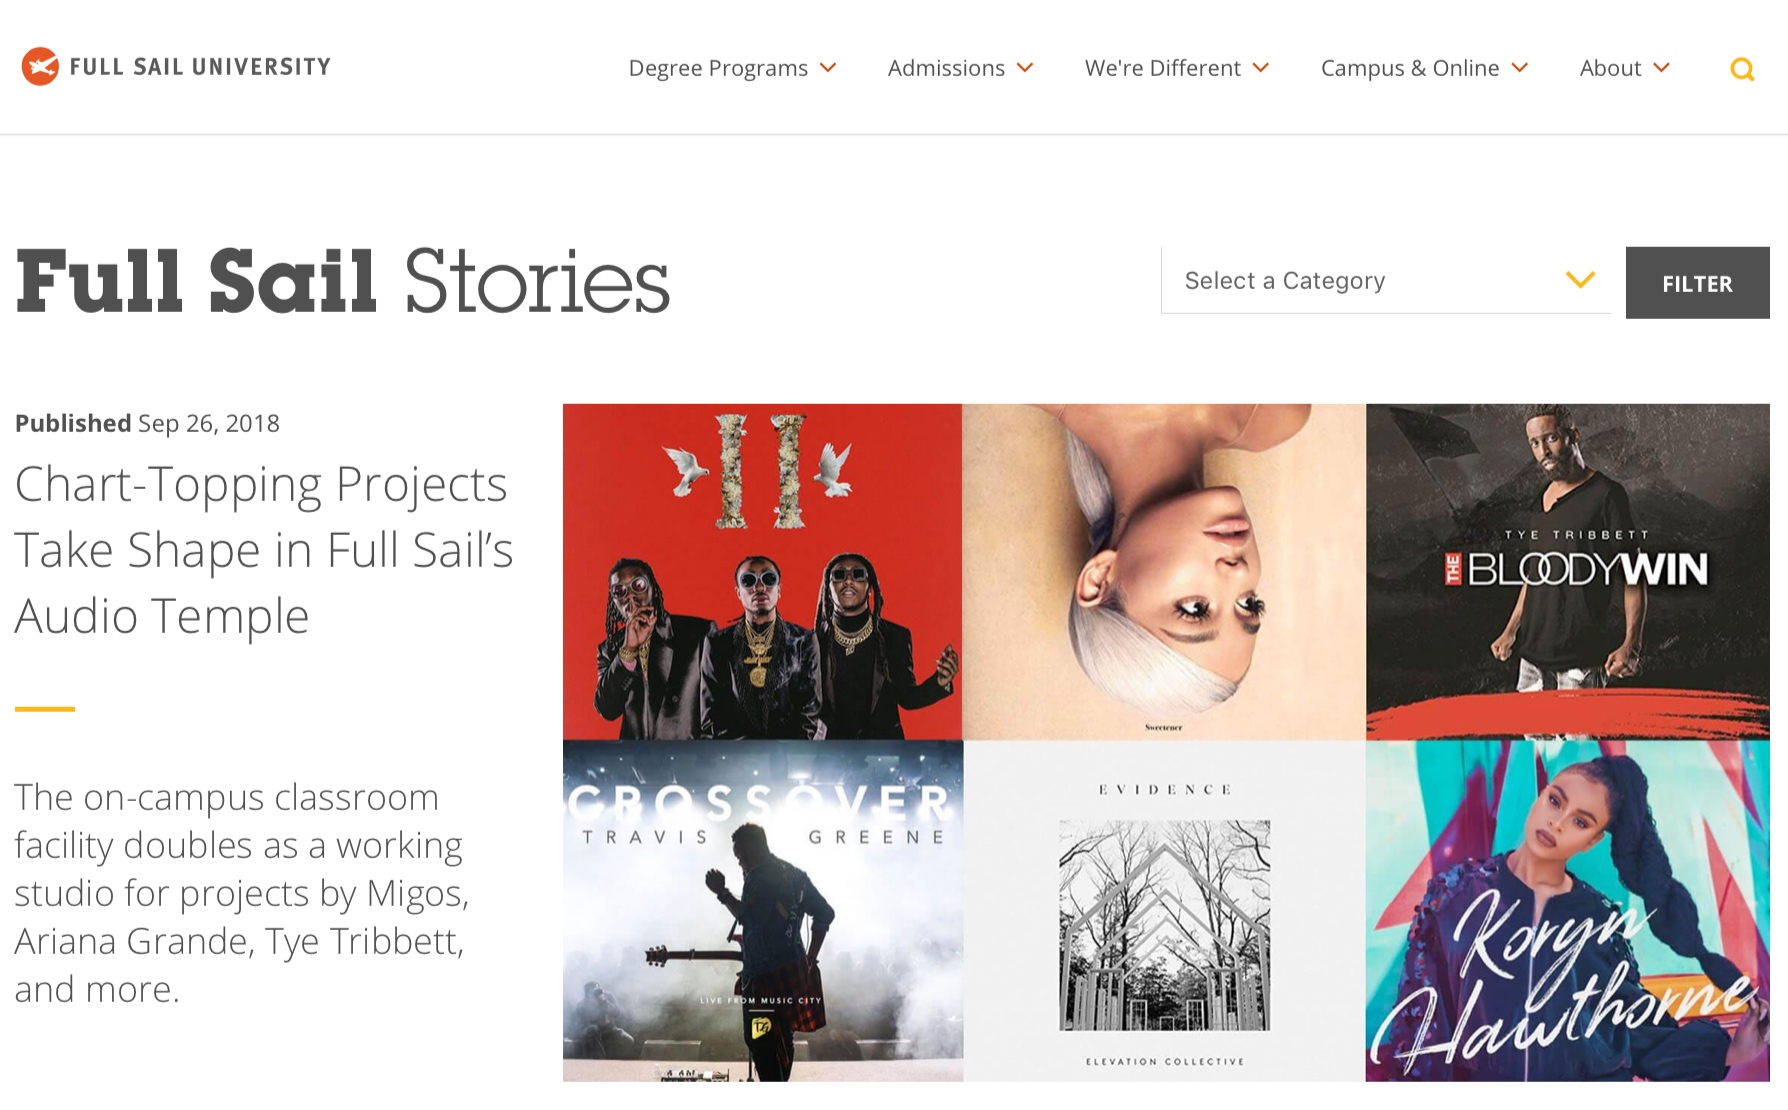 industry collaborations - Billboard #1 projects recorded at full sail university